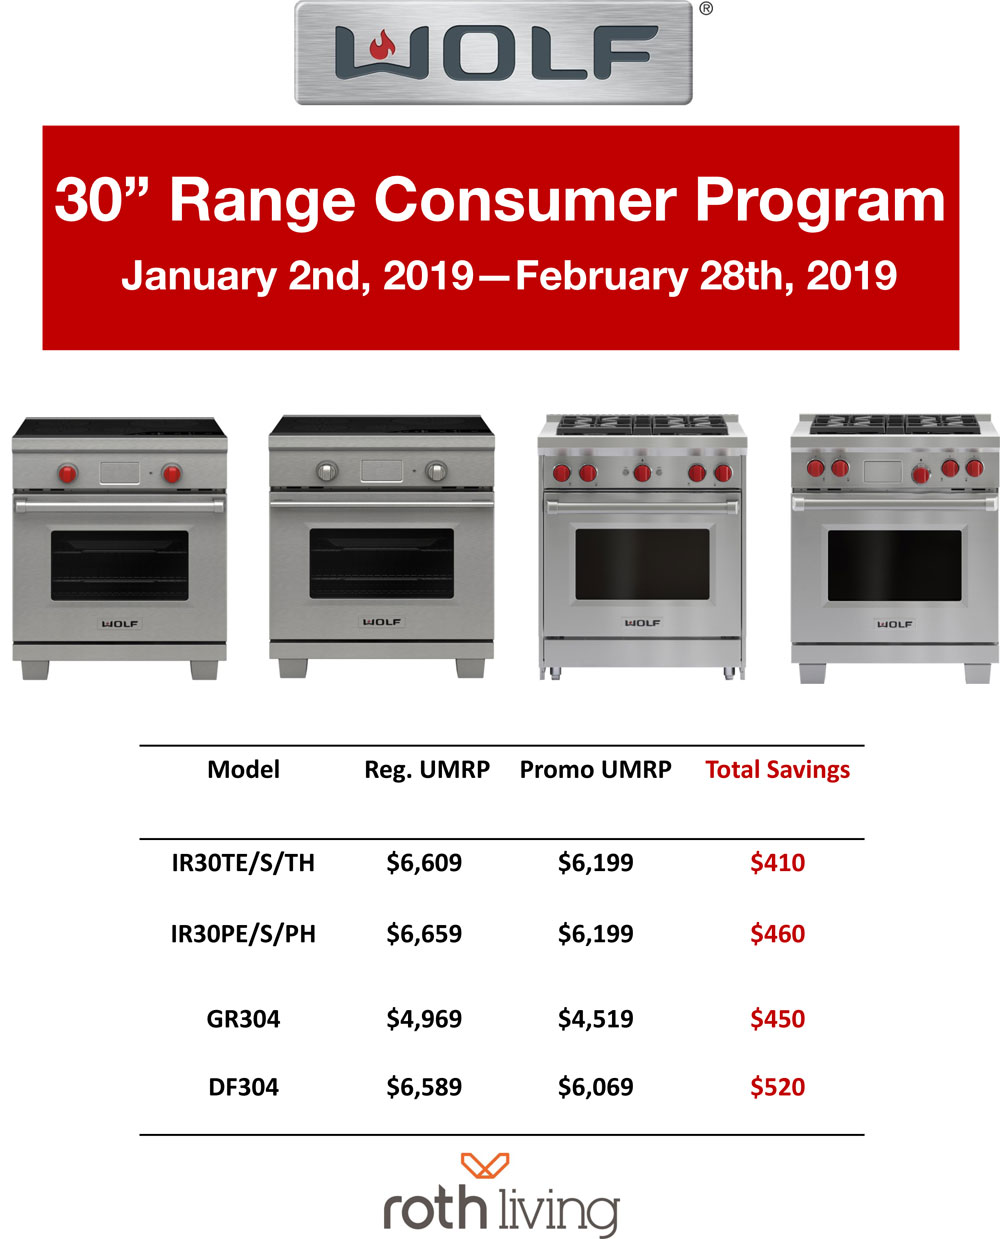 wolf oven promotion